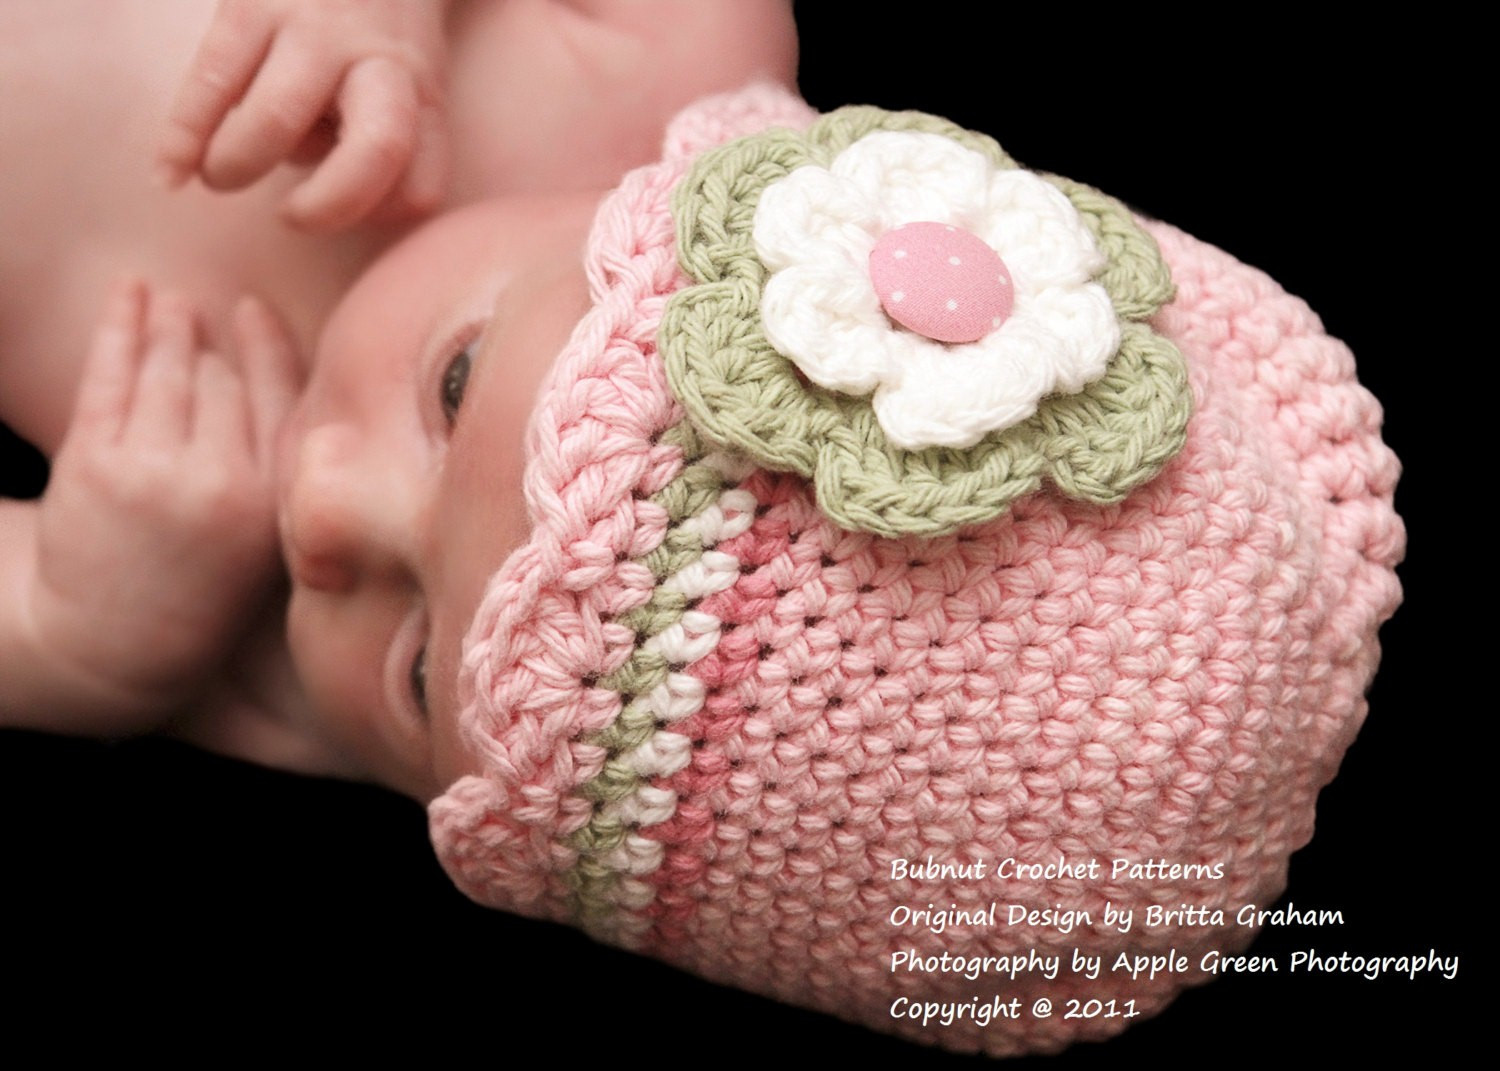 Newborn Crochet Patterns Fresh Free Crochet Baby Hats Patterns for Beginners Of Incredible 41 Ideas Newborn Crochet Patterns